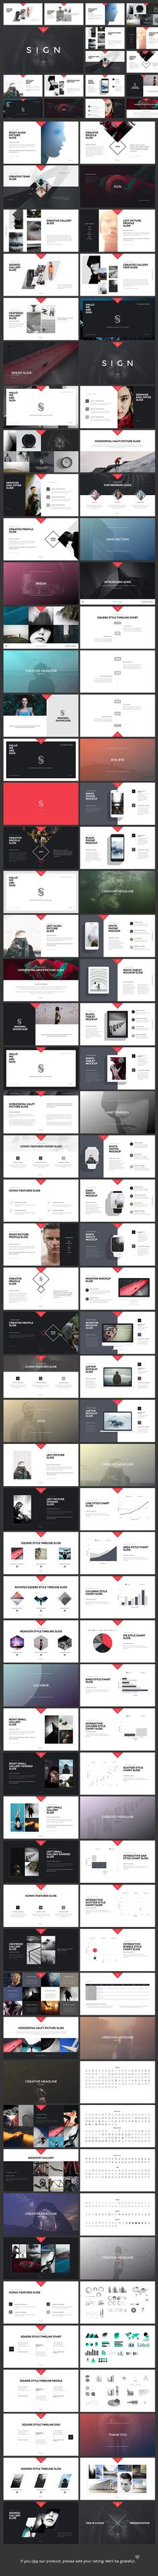 SIGN Keynote Presentation Template. Download here…